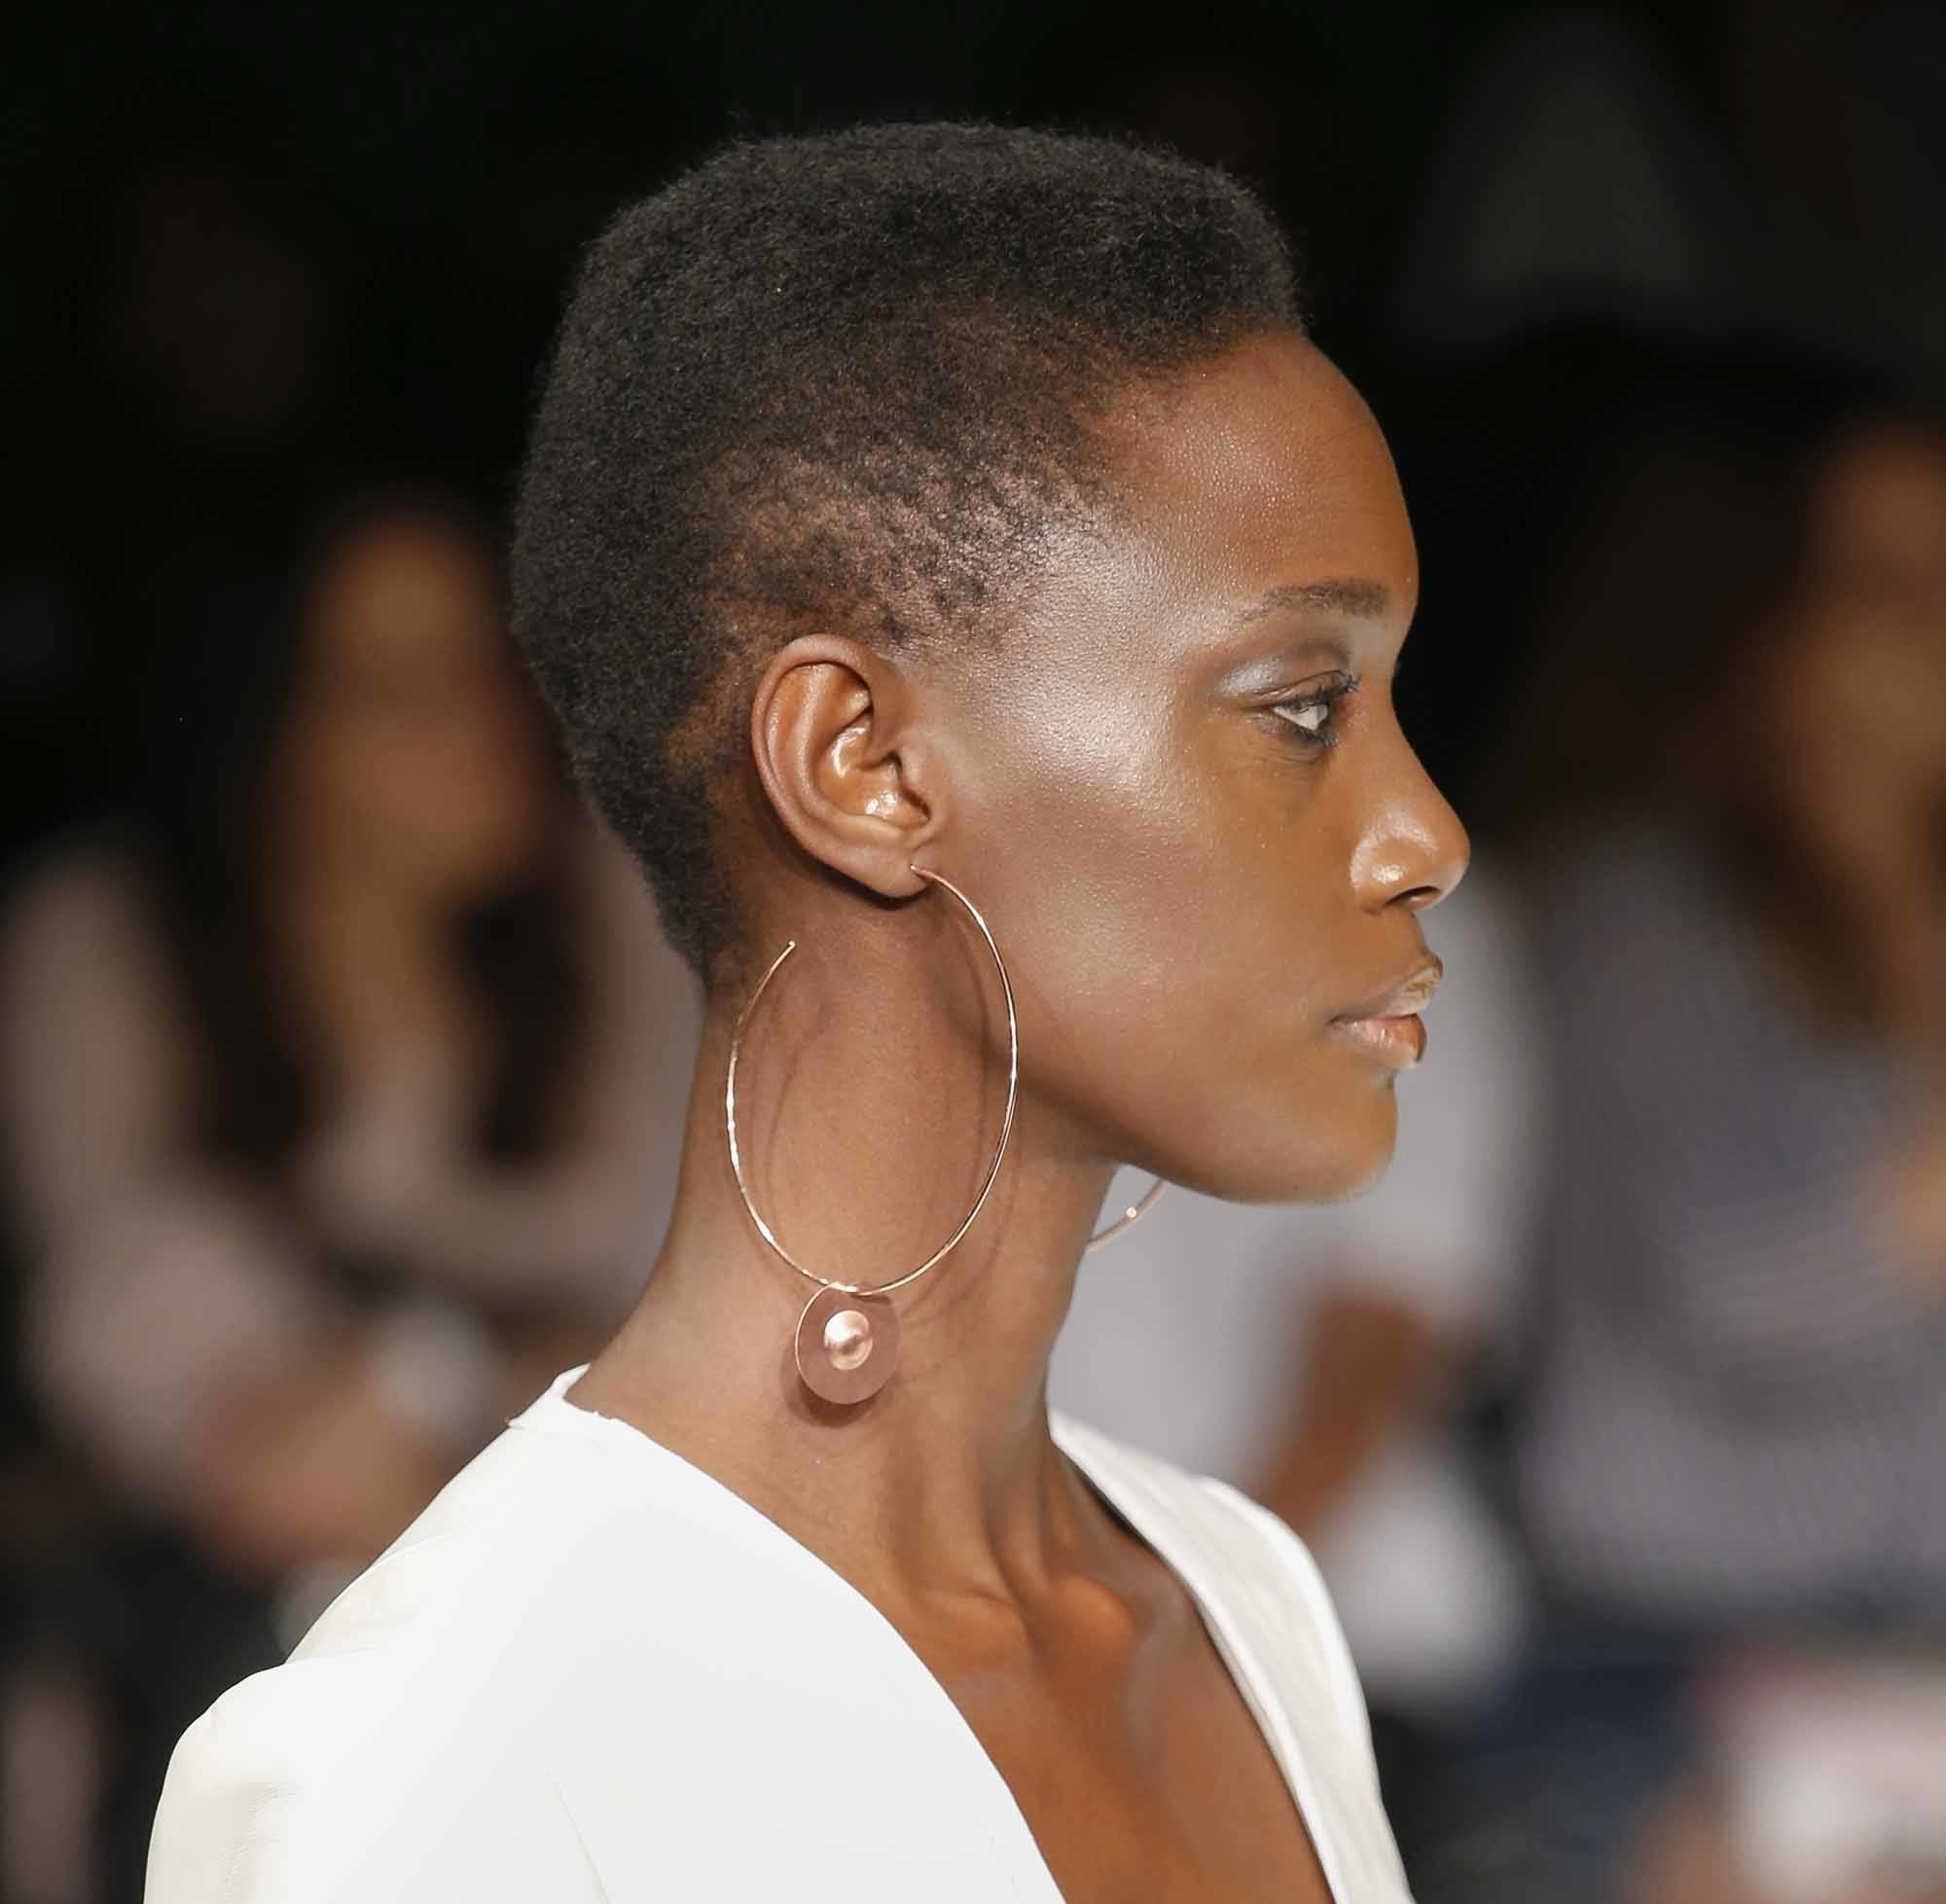 side profile of model with short mohawk afro natural brown hair and oversized hoop earrings at aw16 fashion week show